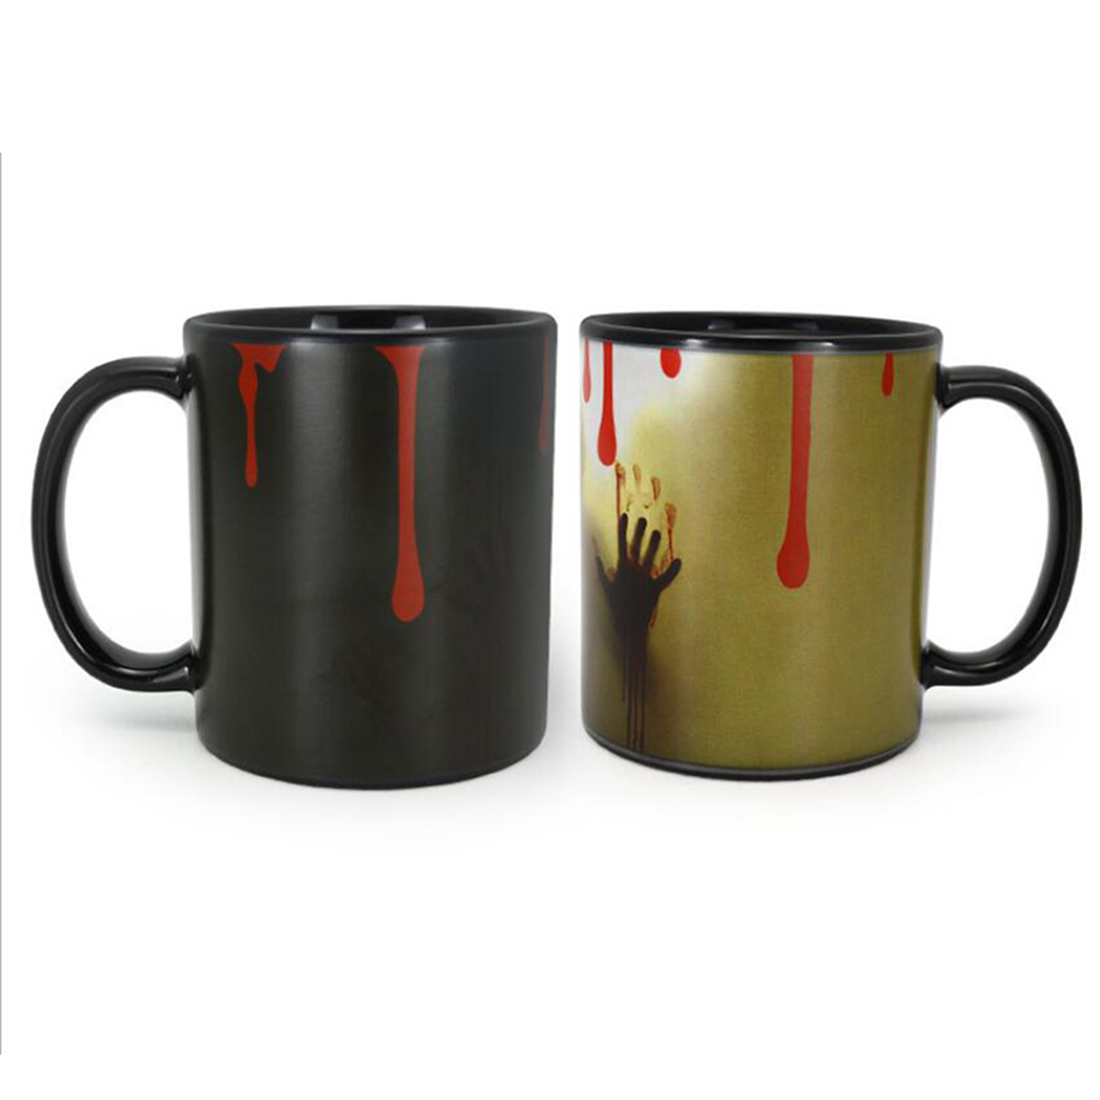 Ghost Mug Color India Buy Online Changing In 3cFKJ1Tl